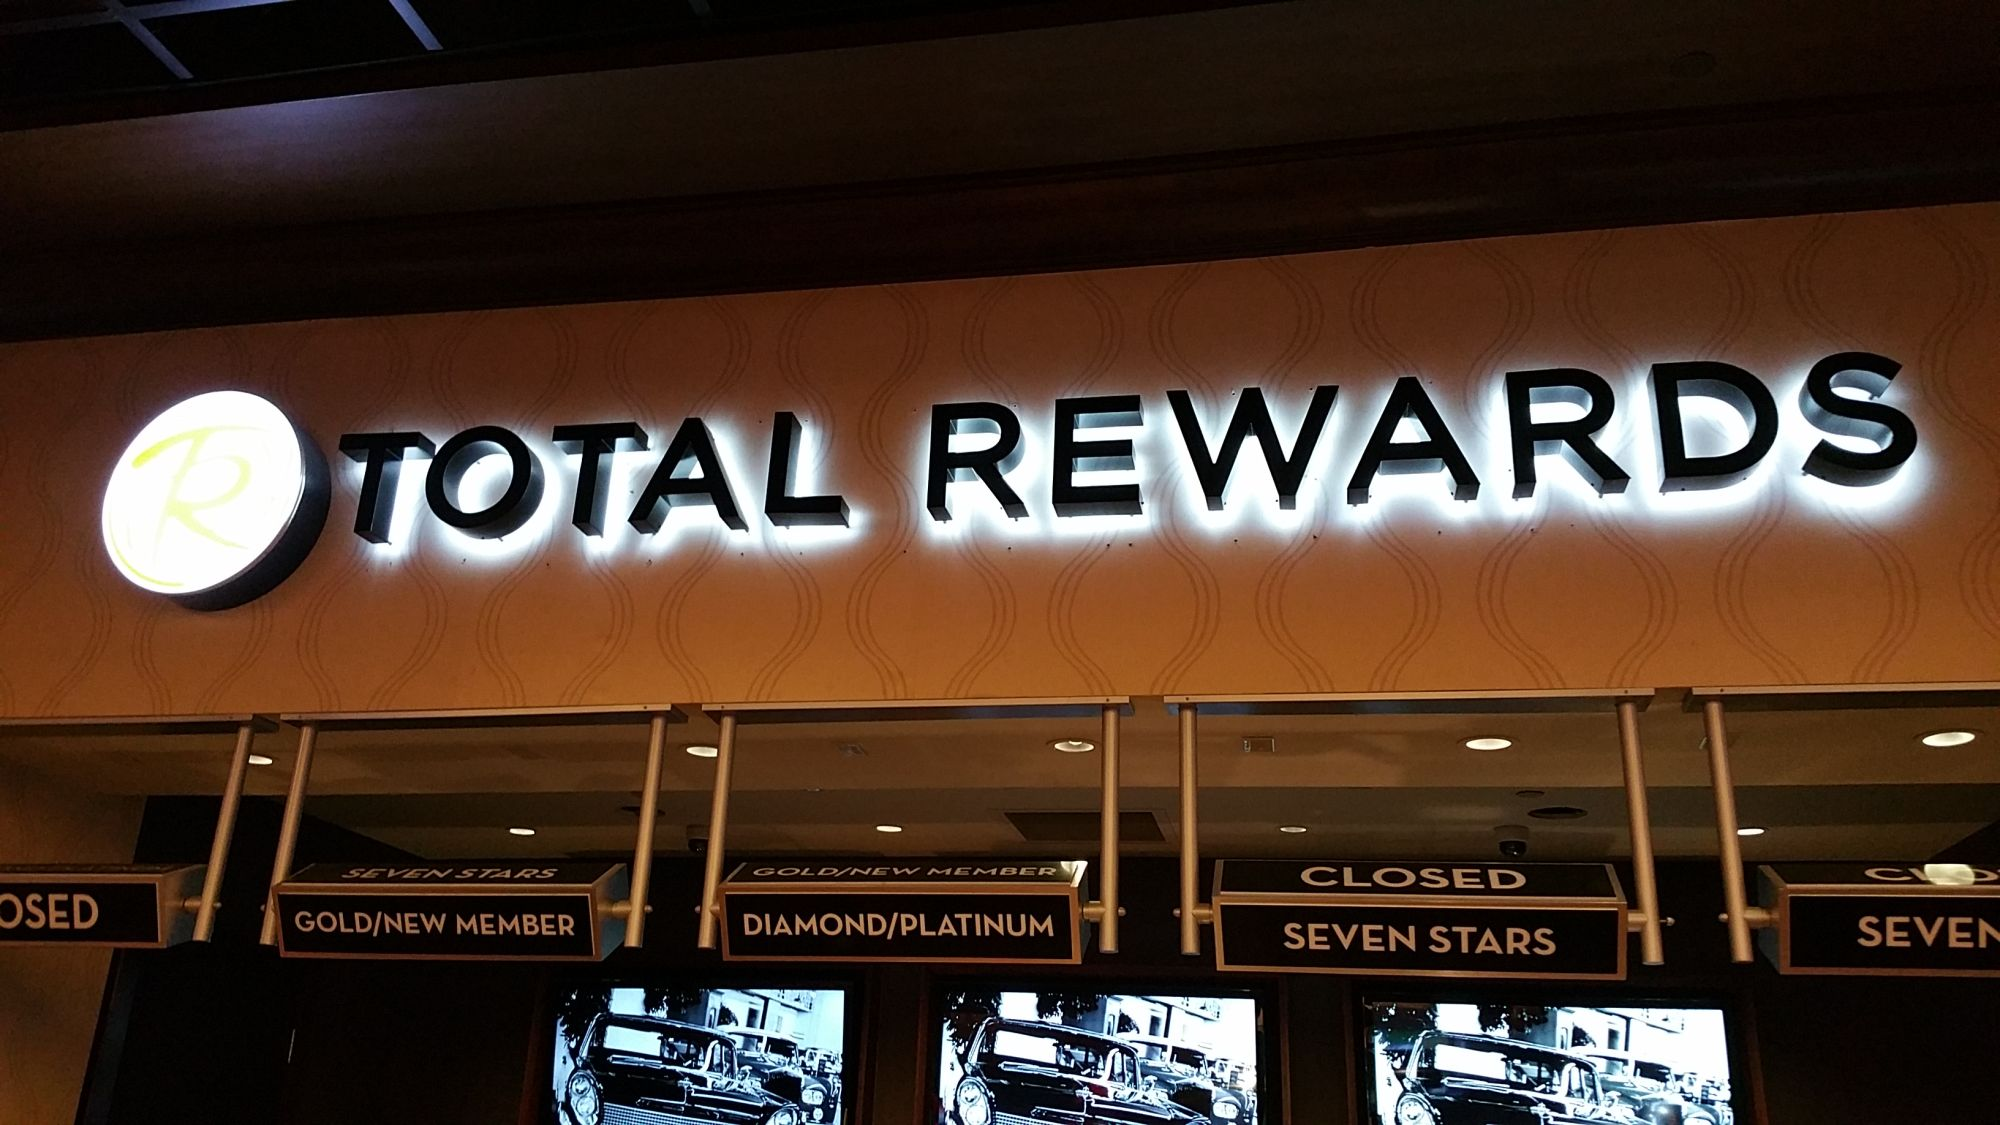 Atlantic City Total Rewards Restaurants